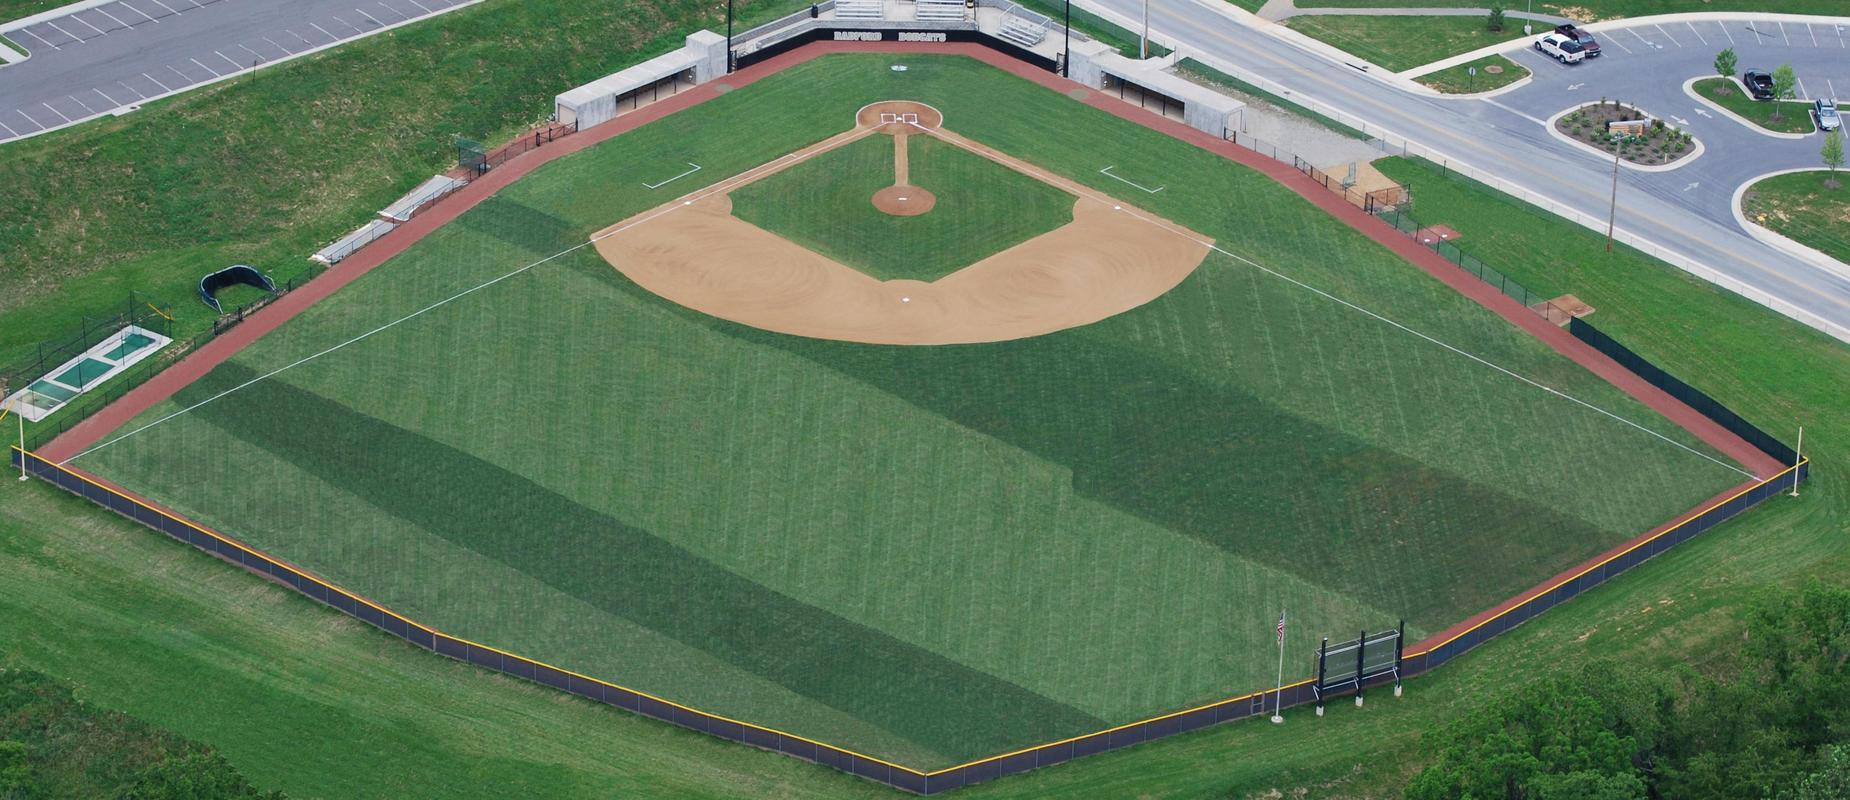 Baseball field, picture by Mark Armentrout